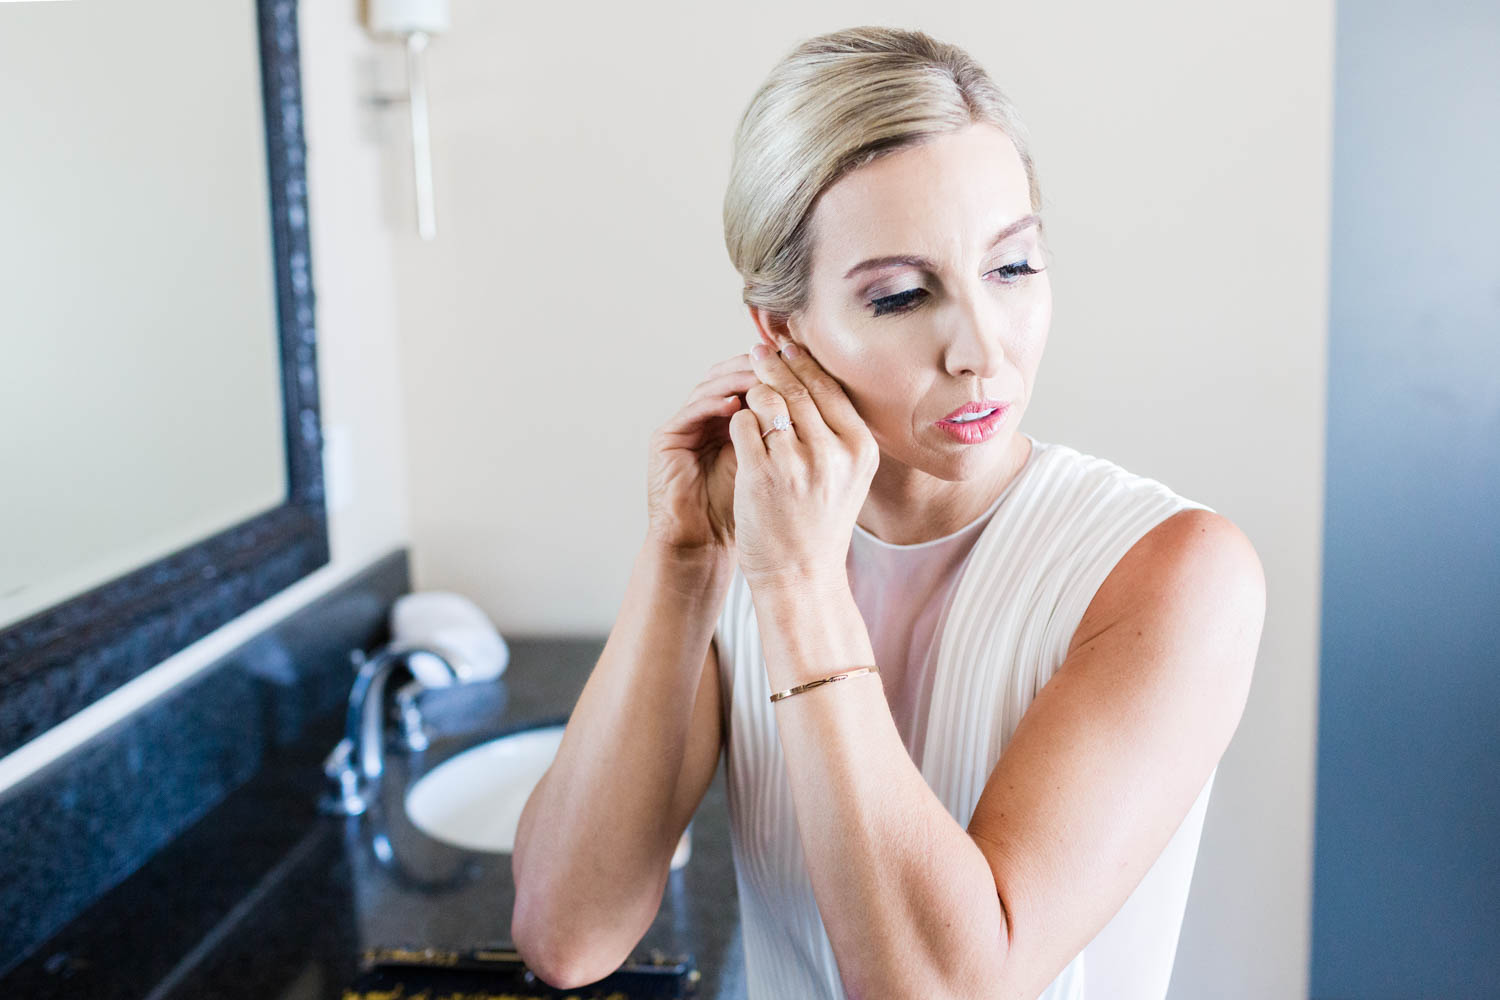 Wedding getting ready for 849 wedding in Palm Springs, Cavin Elizabeth Photography